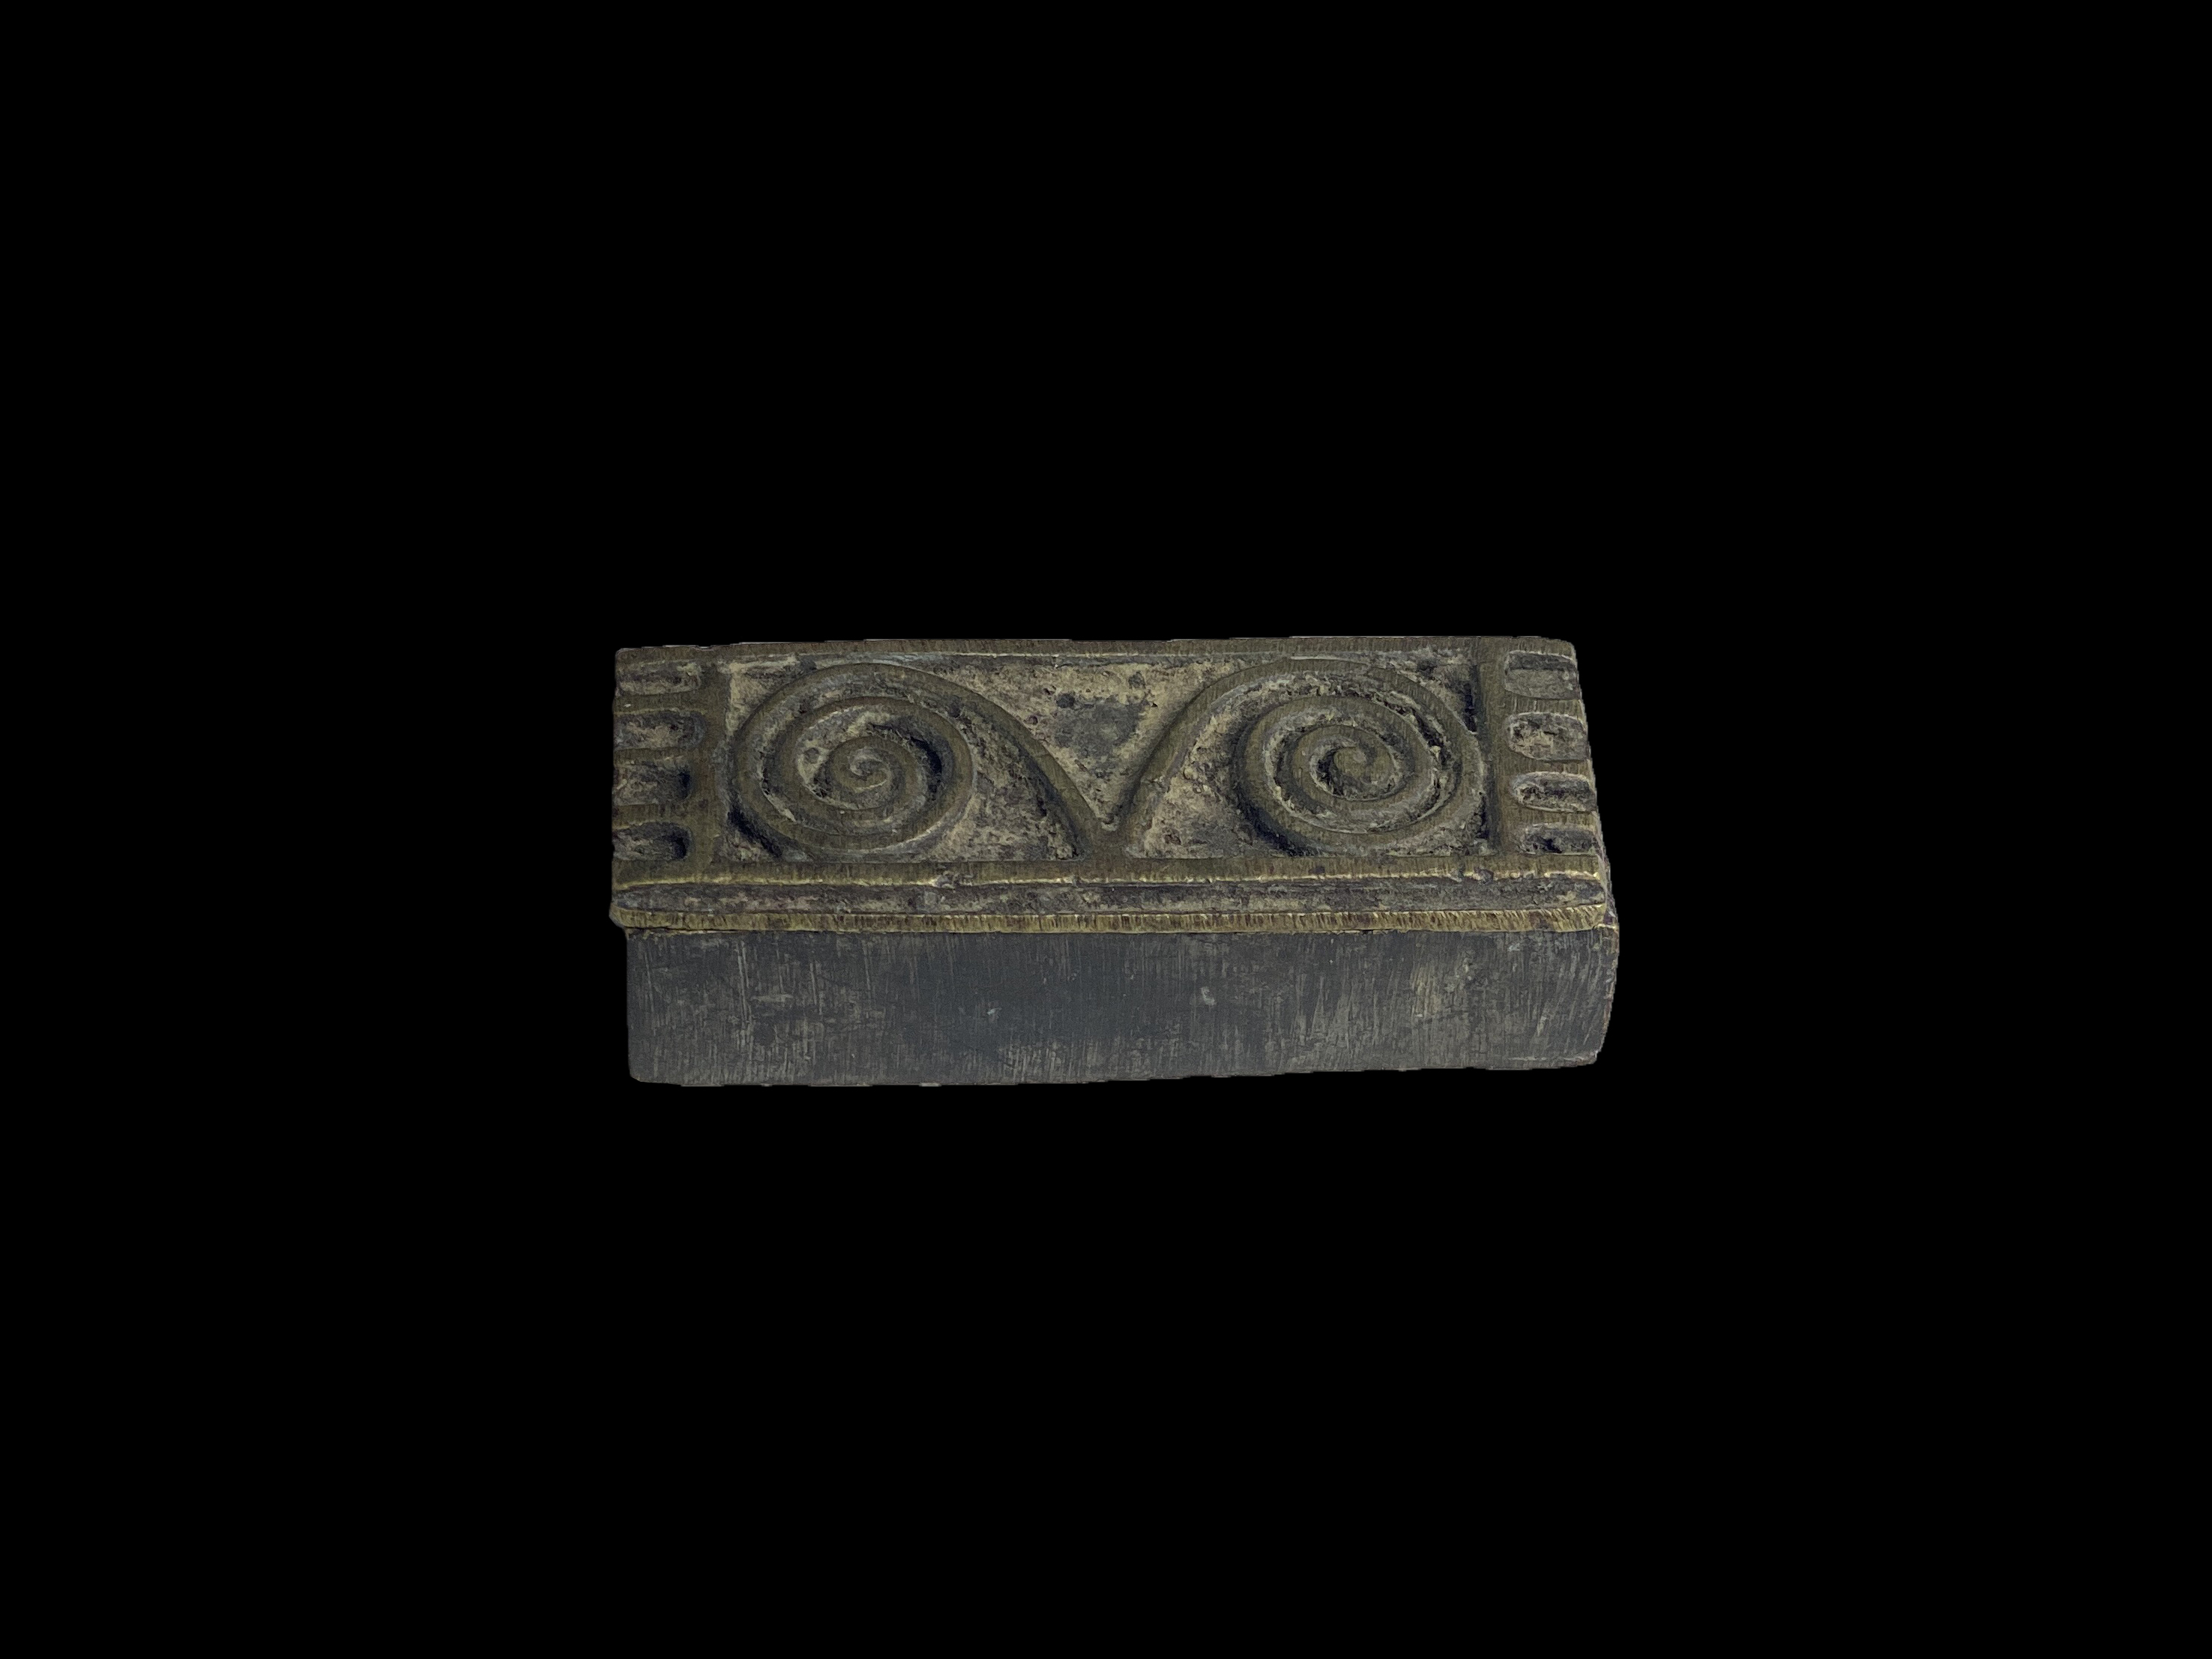 Bronze Box with Rams Horns Design on Lid - Ashanti People, Ghana